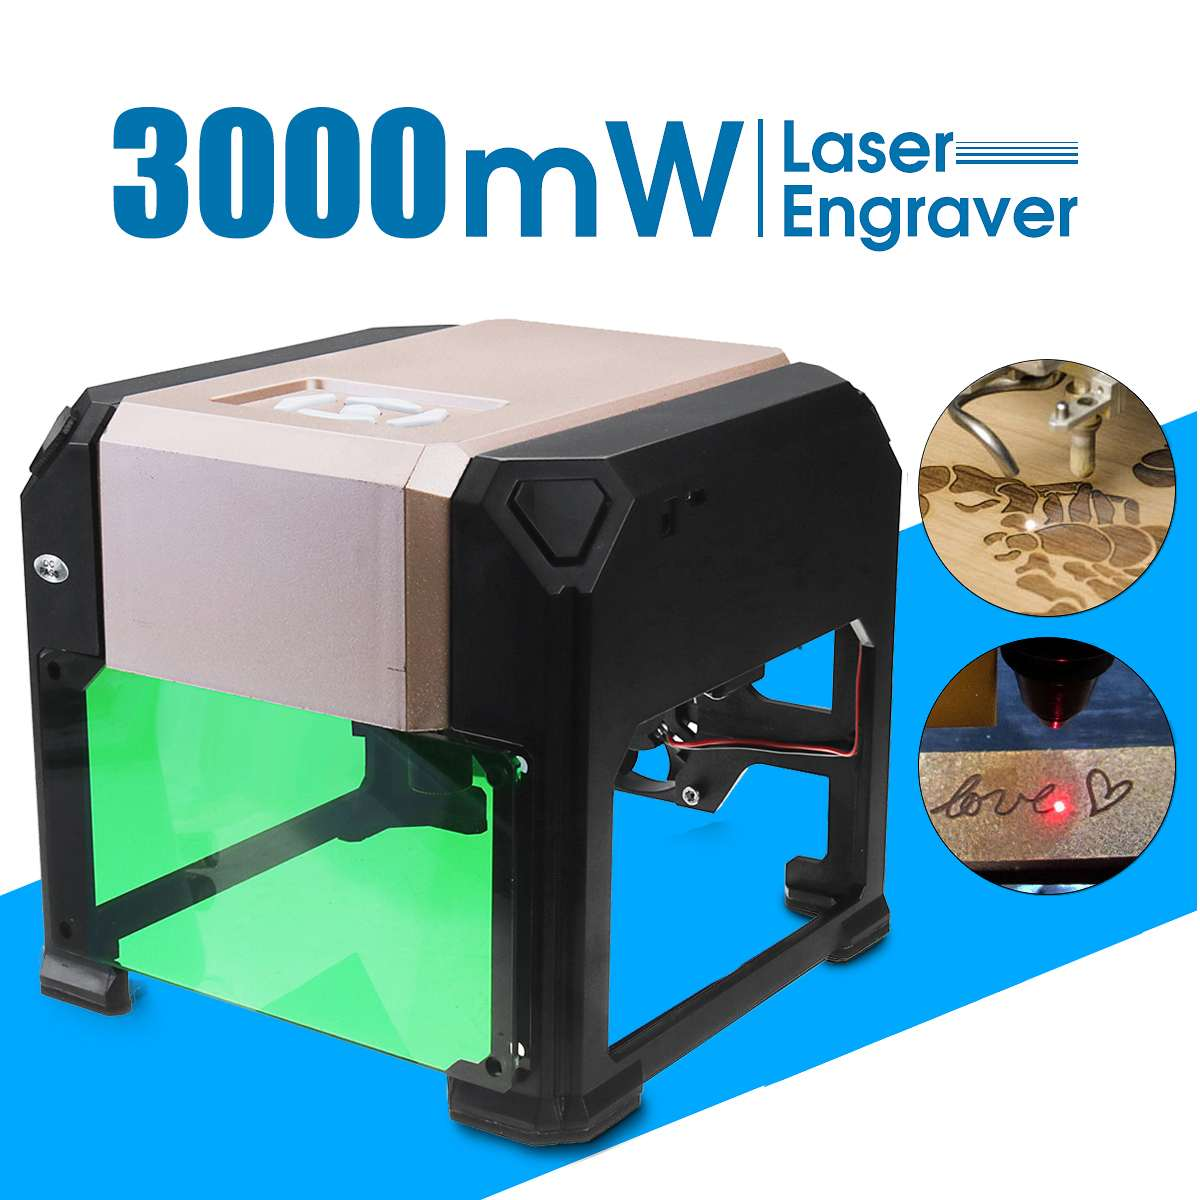 3000 MW CNC Laser Engraver DIY Logo Mark Printer Laser Engraving Carving Machine For Home Use Handicraft Wood Tools(China)